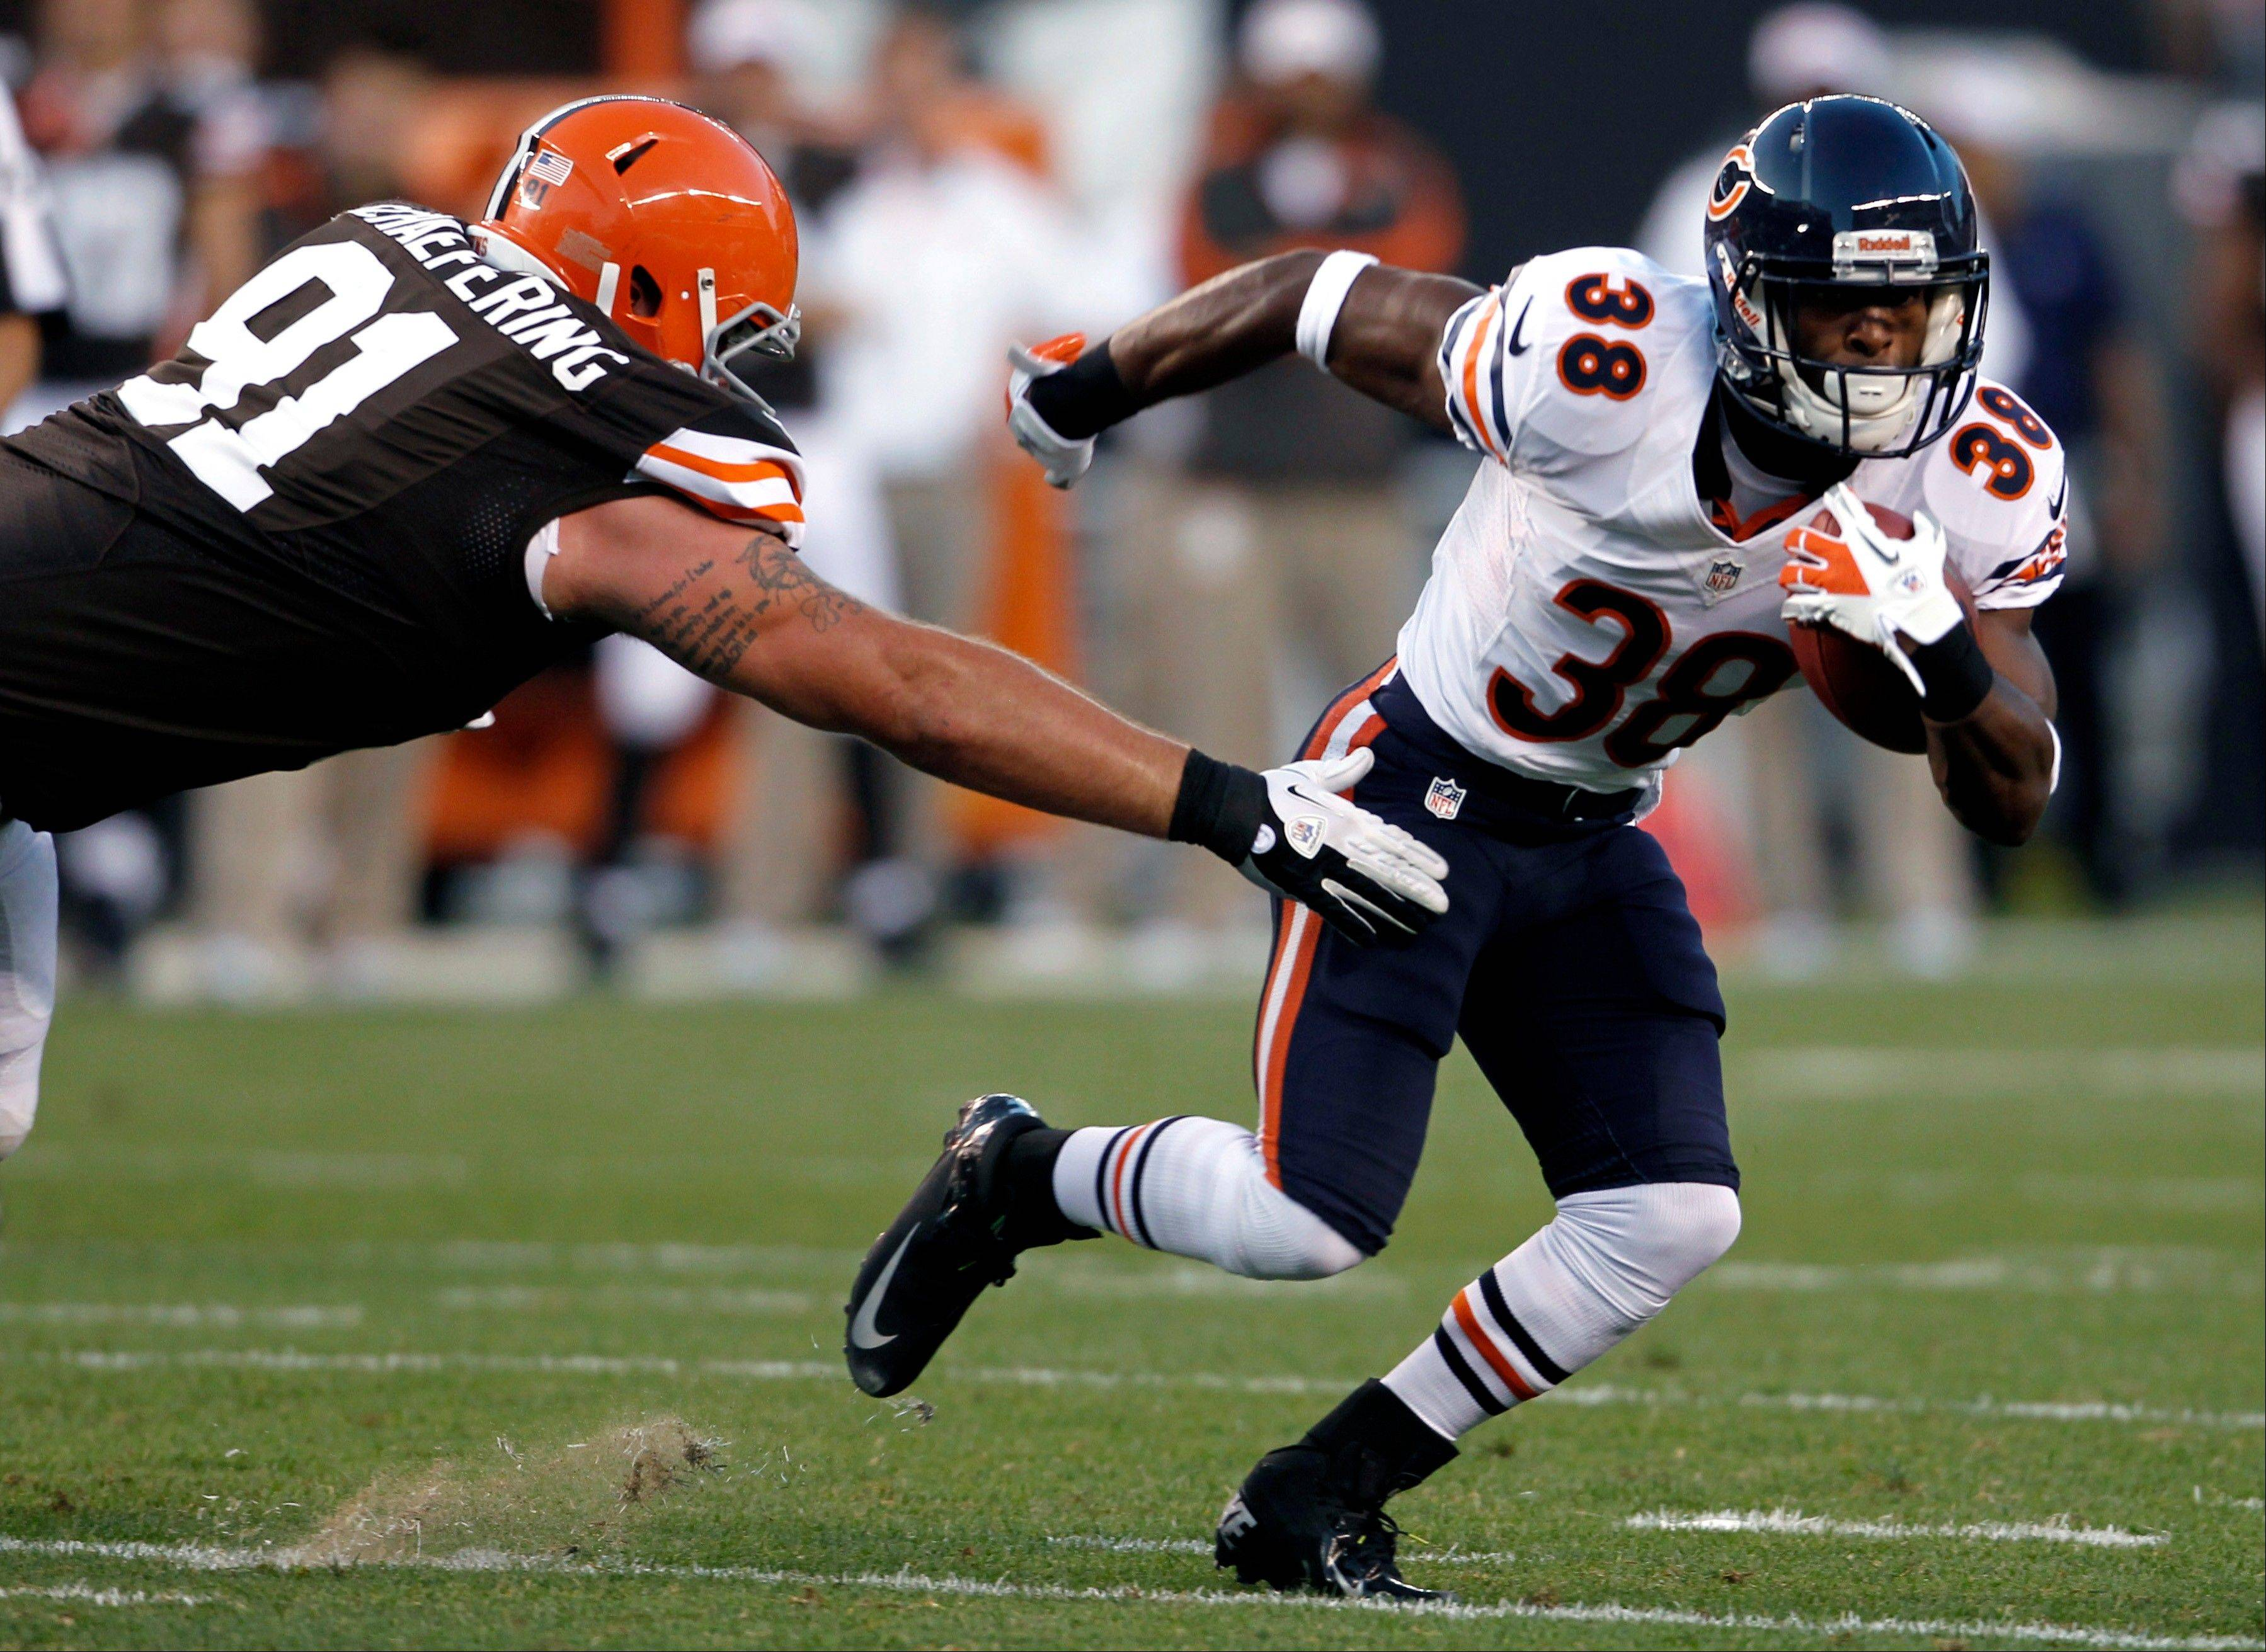 Chicago Bears running back Lorenzo Booker avoids the tackle by Cleveland Browns nose tackle Brian Schaefering in the first quarter of a preseason NFL football game Thursday, Aug. 30, 2012, in Cleveland.